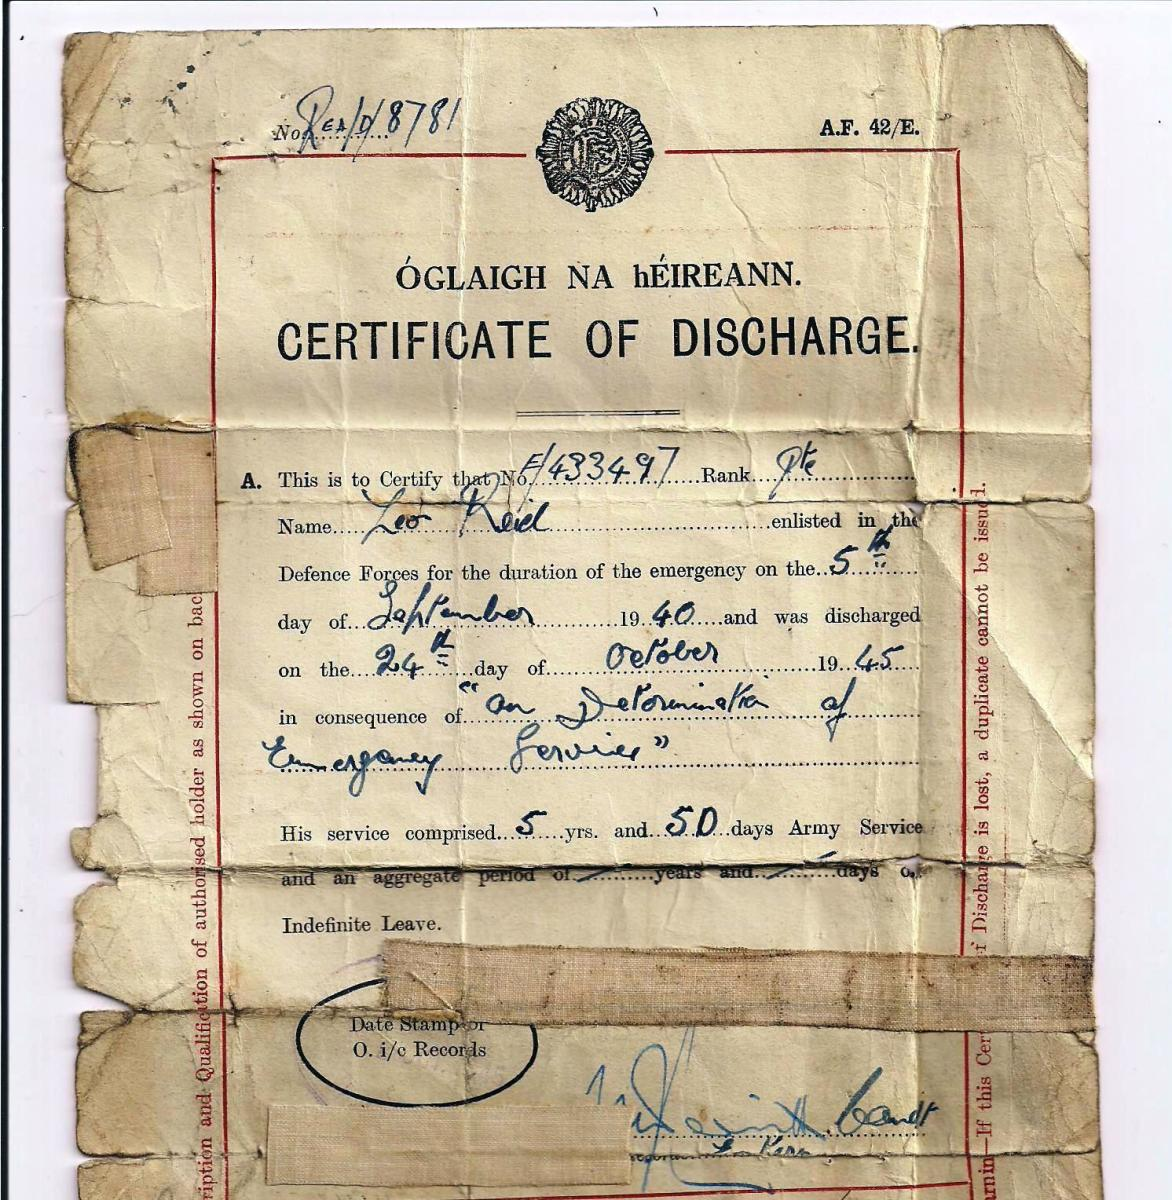 Irish Army discharge papers of Leo Reid